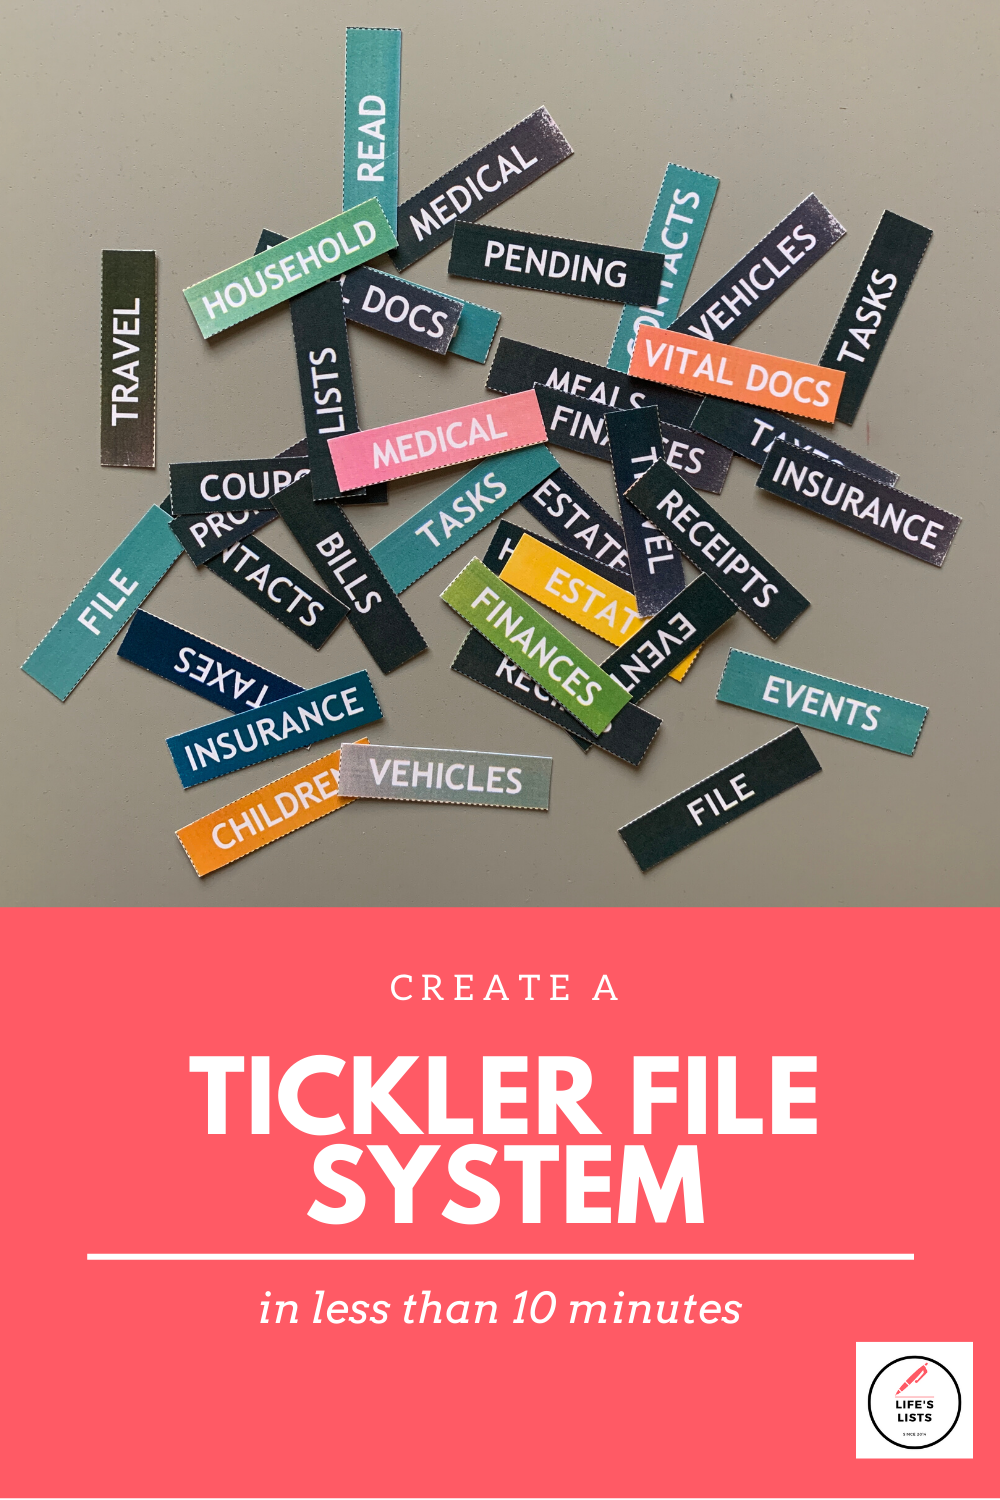 Create a Tickler File System in Less than 10 Minutes!